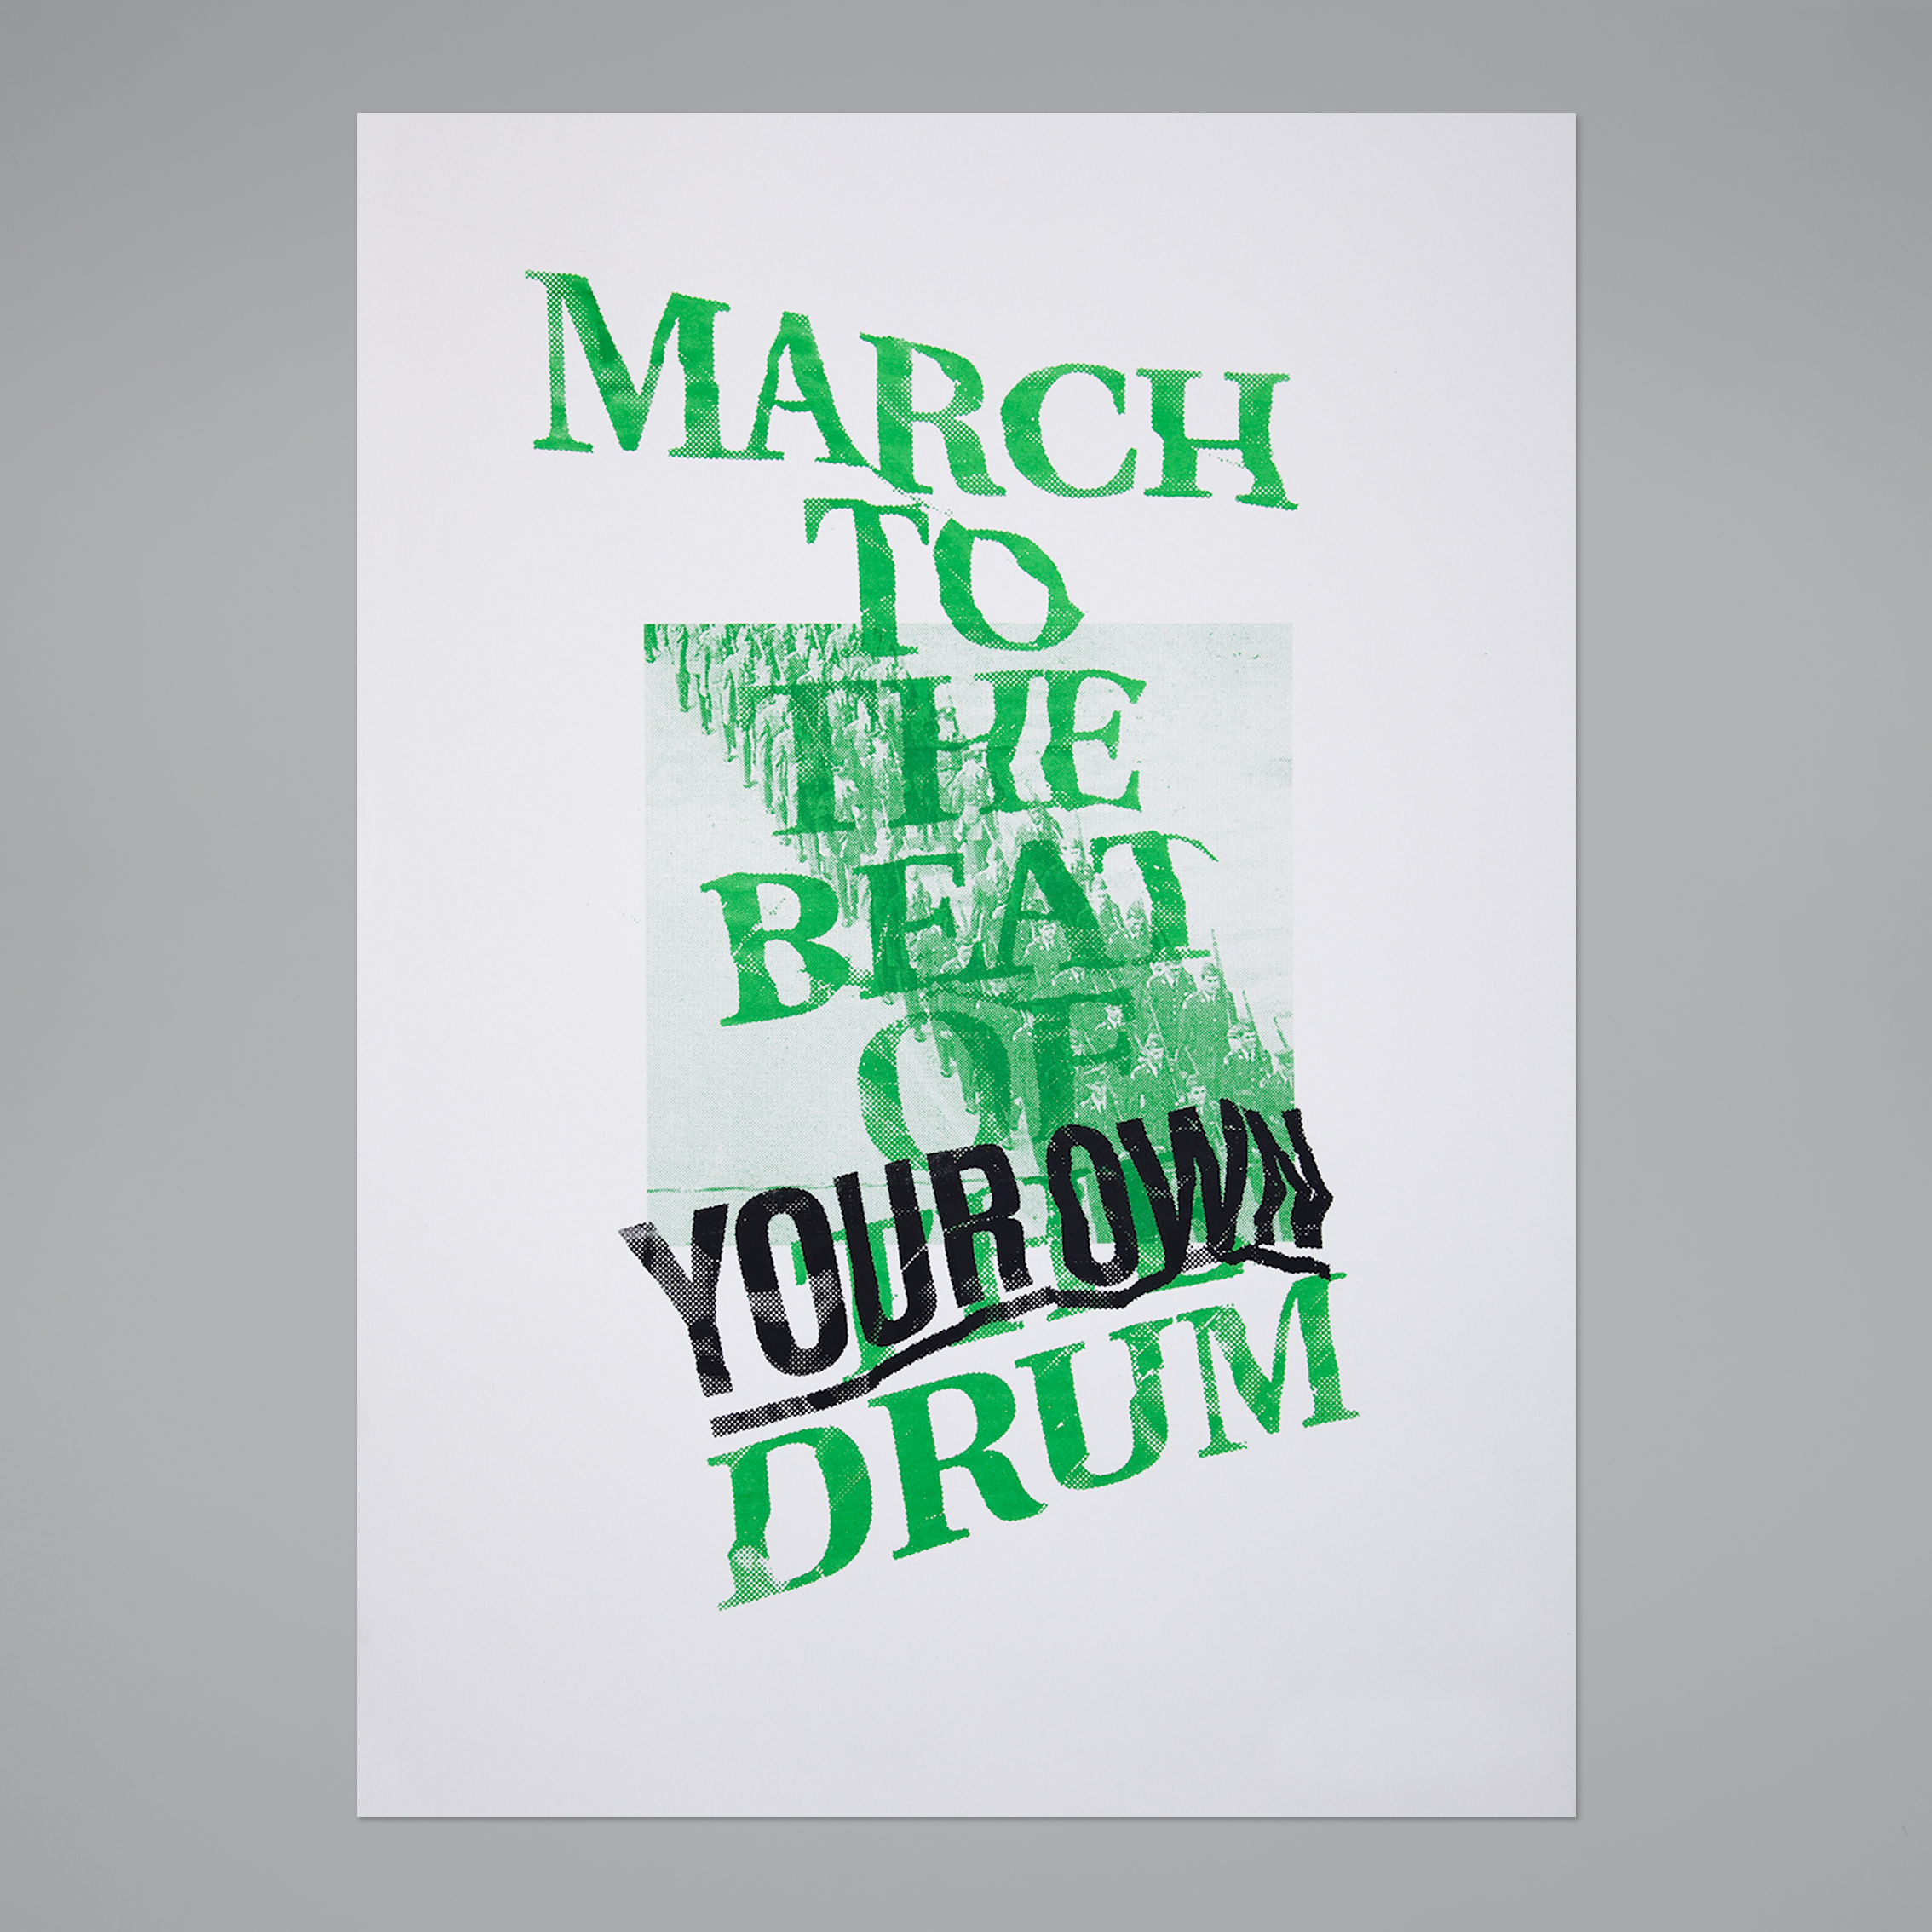 March To The Beat–2colors screen print,50x70 cm, 2012